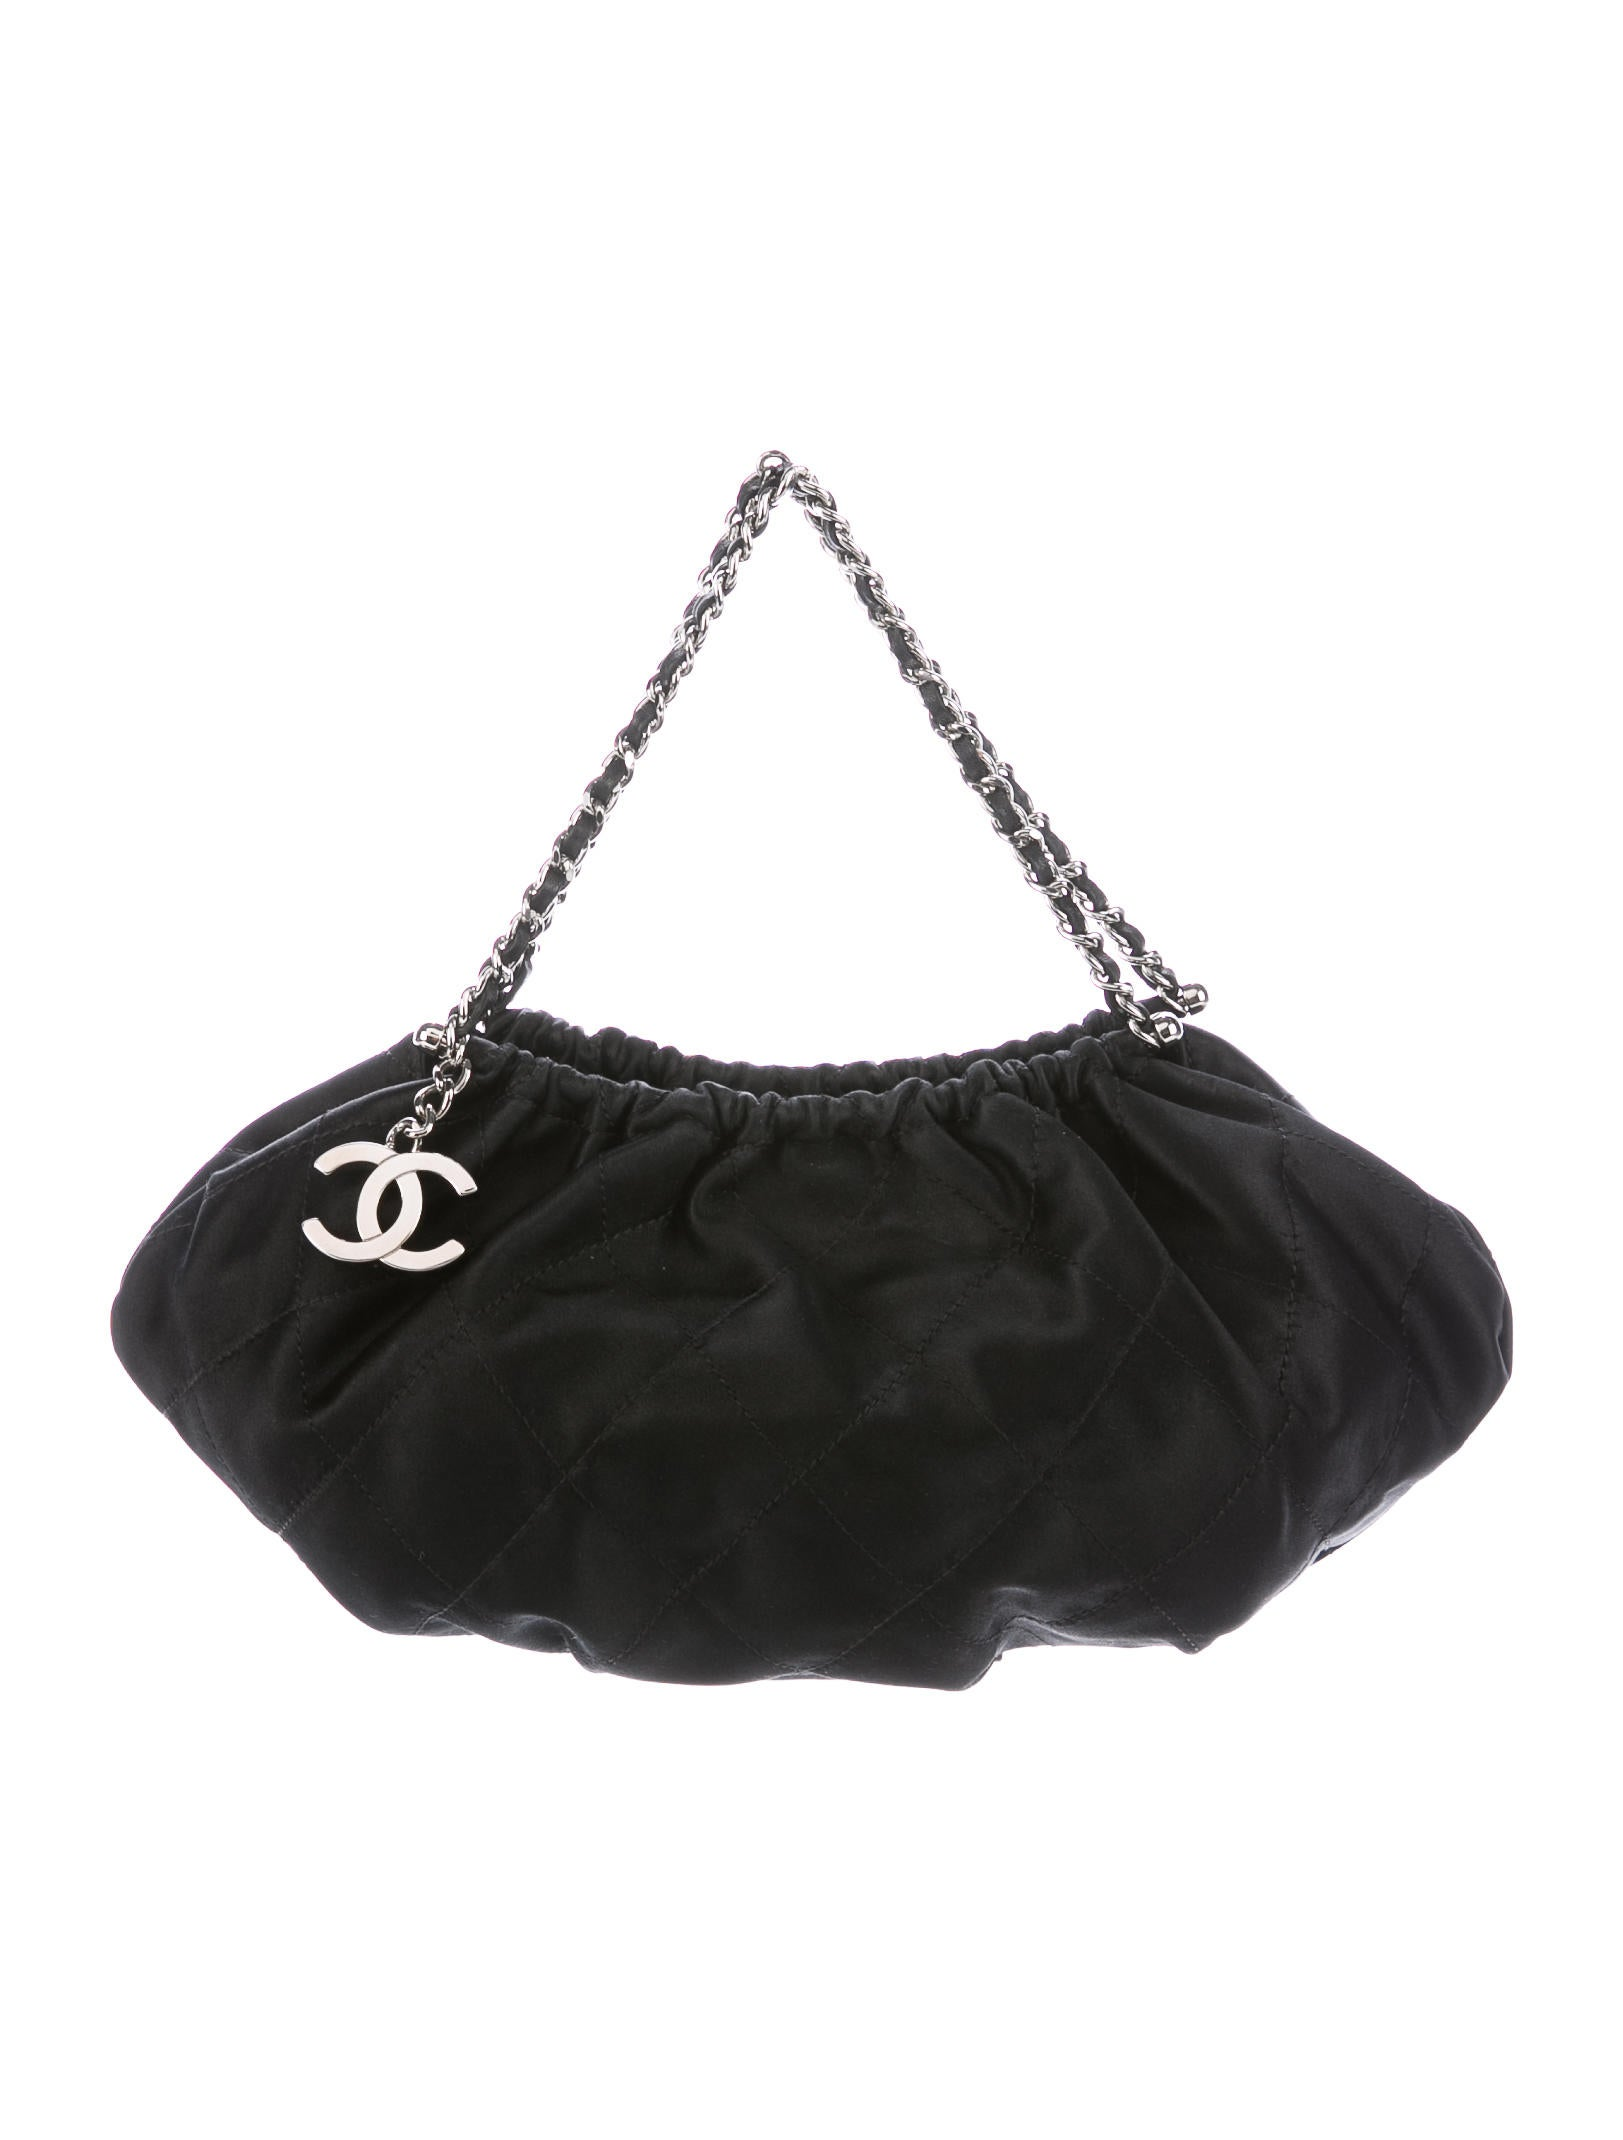 1488a26650 Chanel Evening Bag Silver | Stanford Center for Opportunity Policy ...